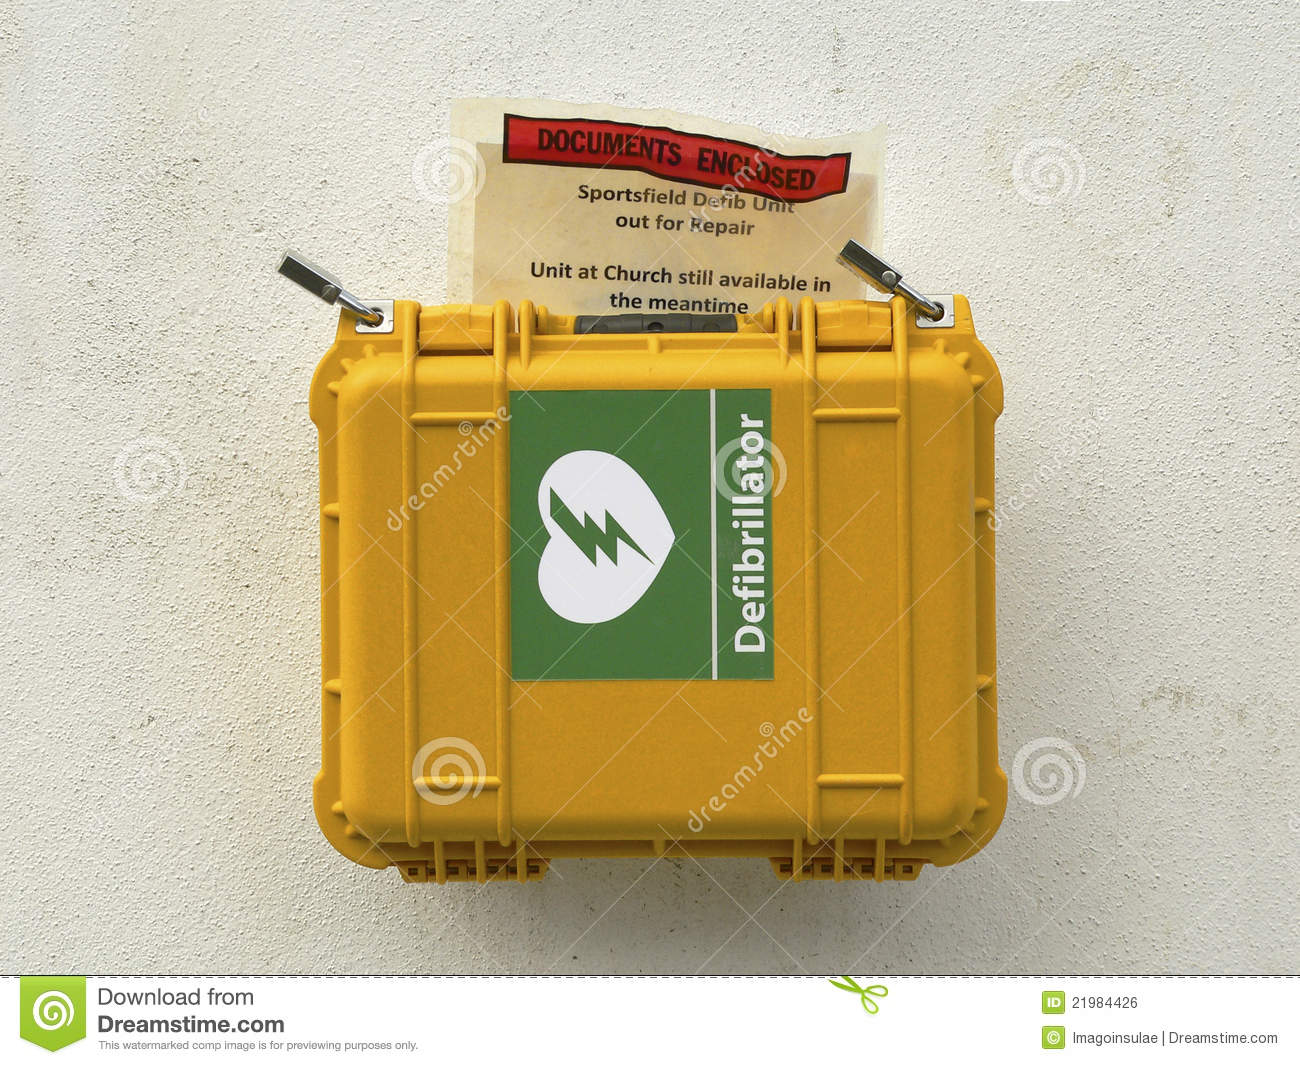 how to use a defibrillator video